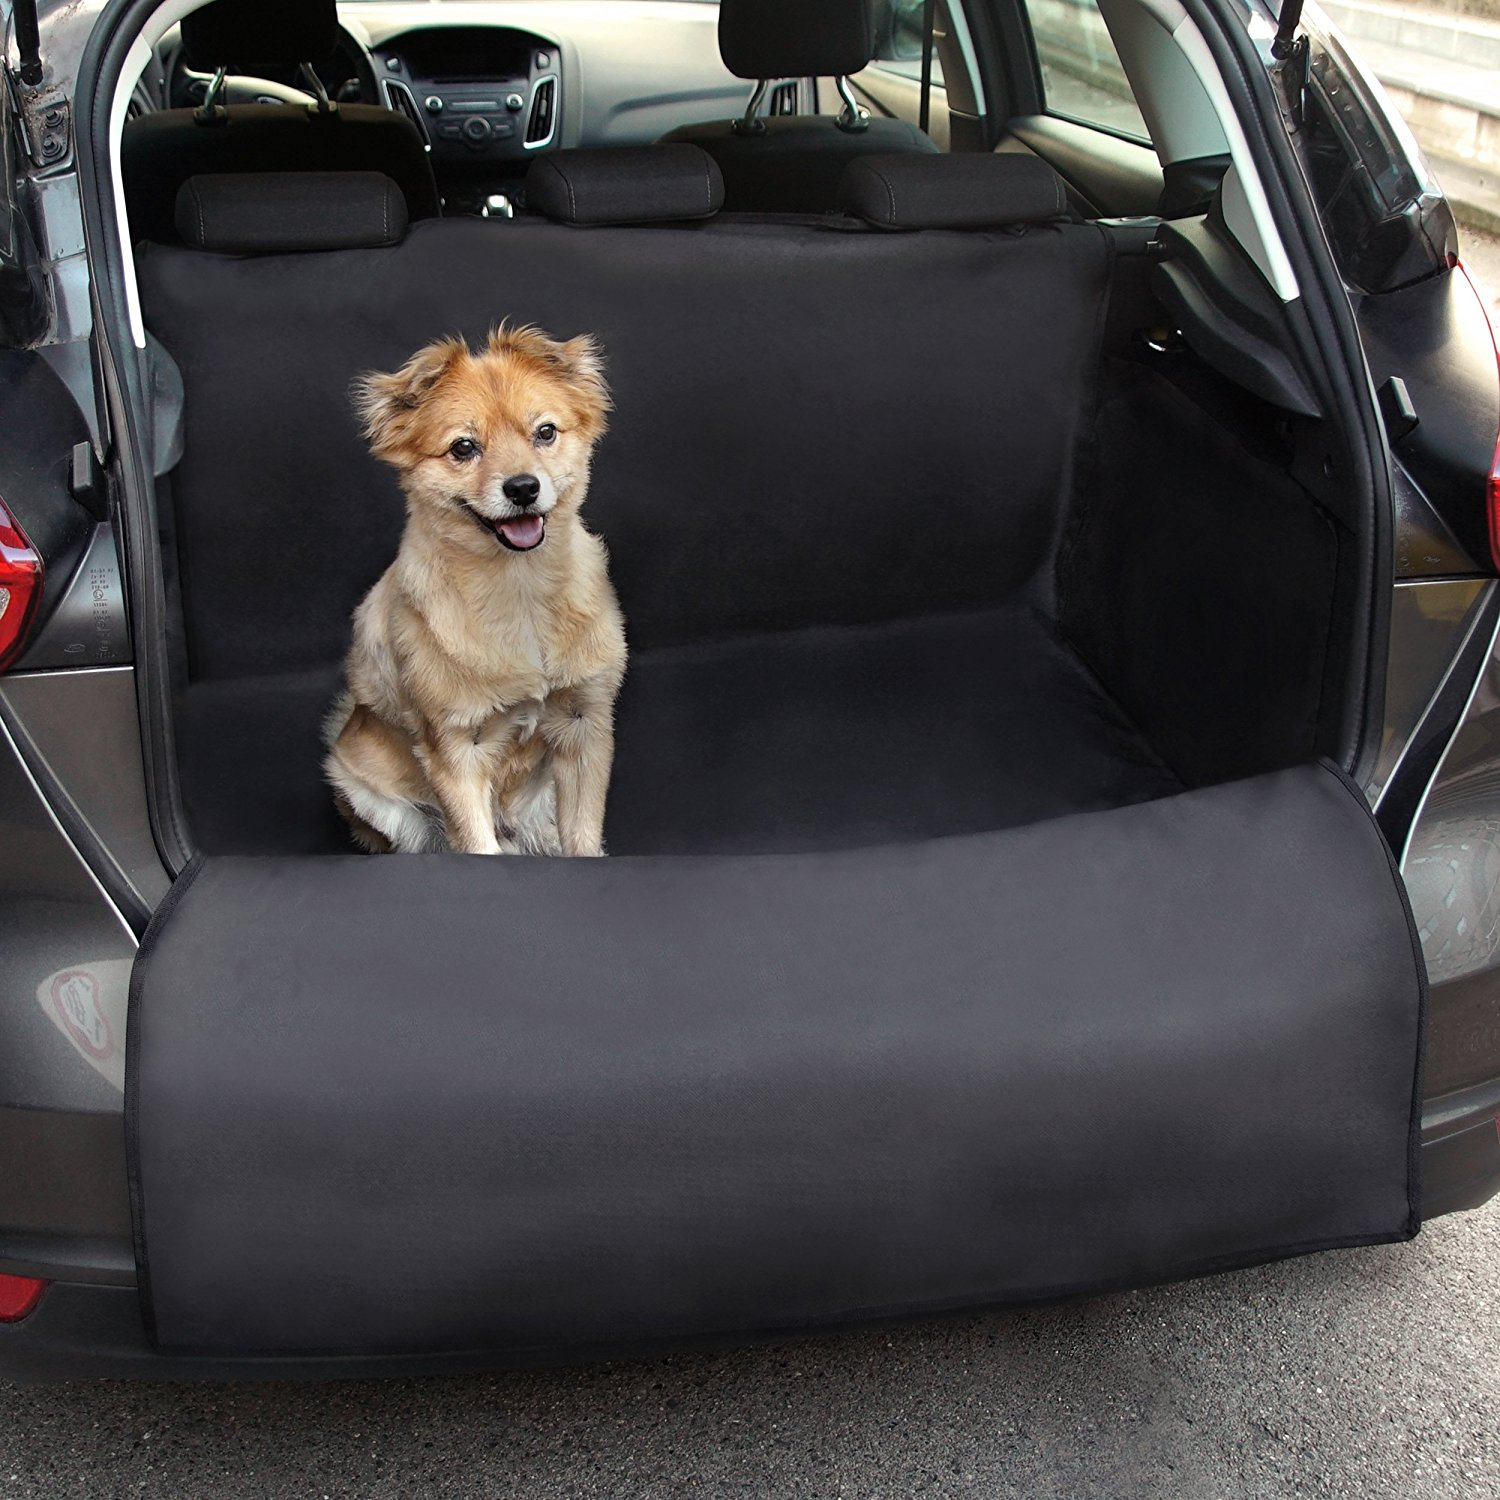 Dog Car Protector >> Details About Cargo Liner For Dog Cat Car Boot Protector Blanket Waterproof Pet Seat Cover Mat